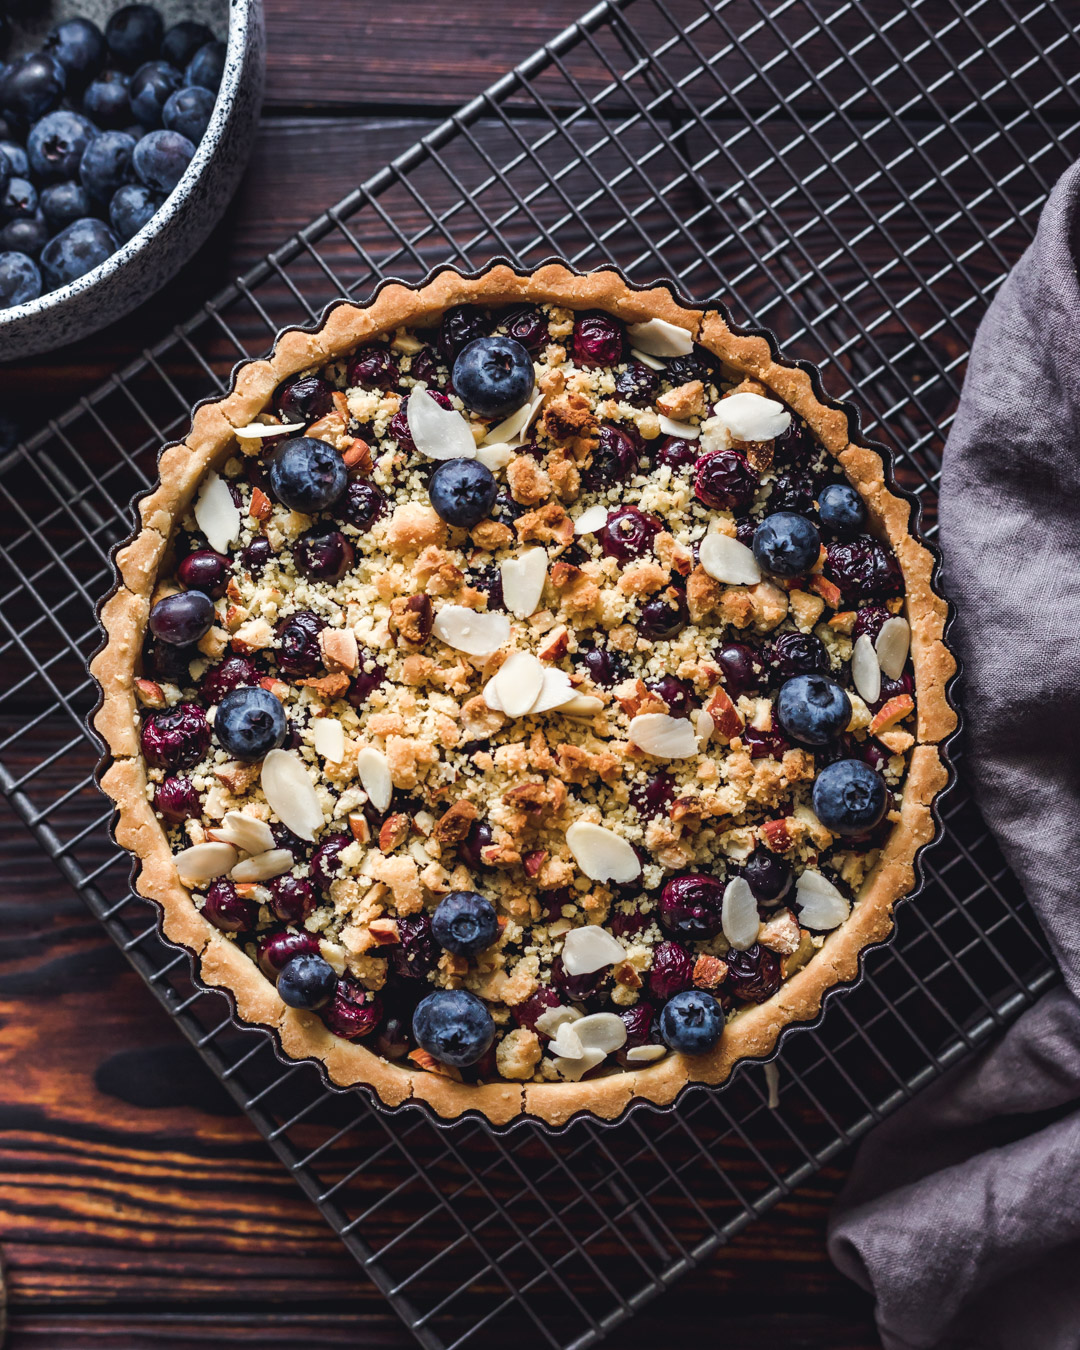 Vegan Blueberry Tart